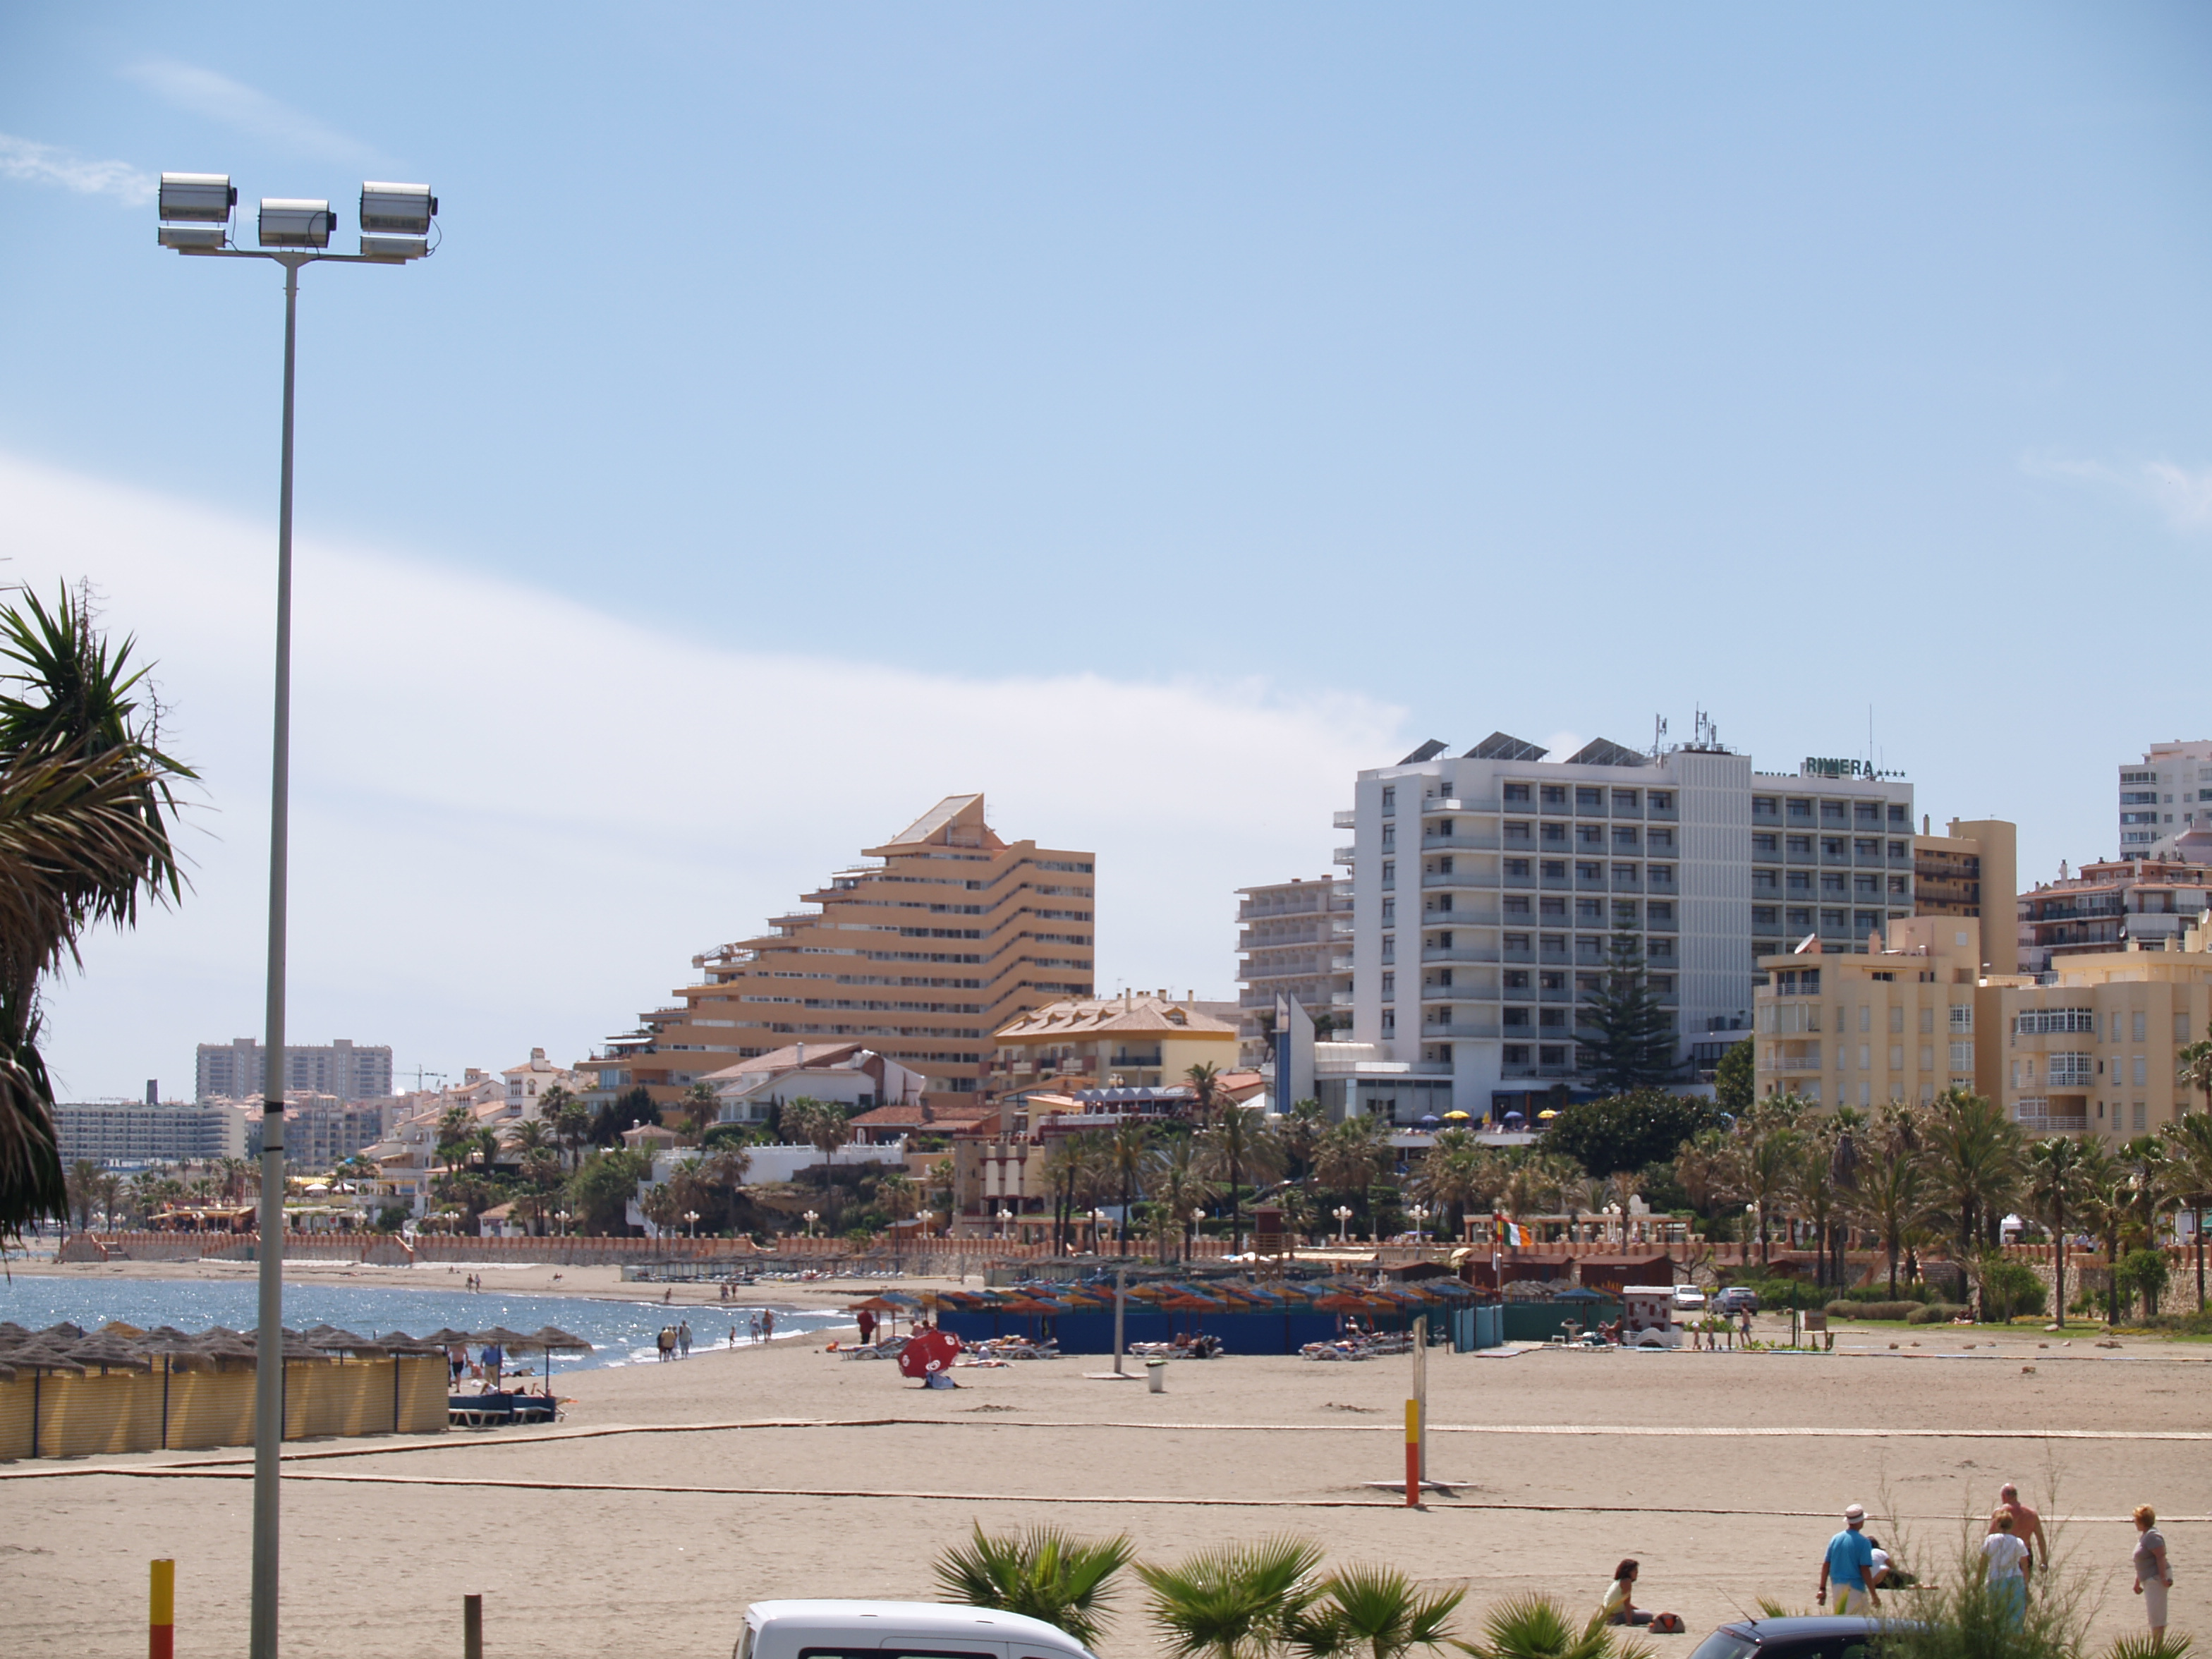 Benalmadena beach and hotels